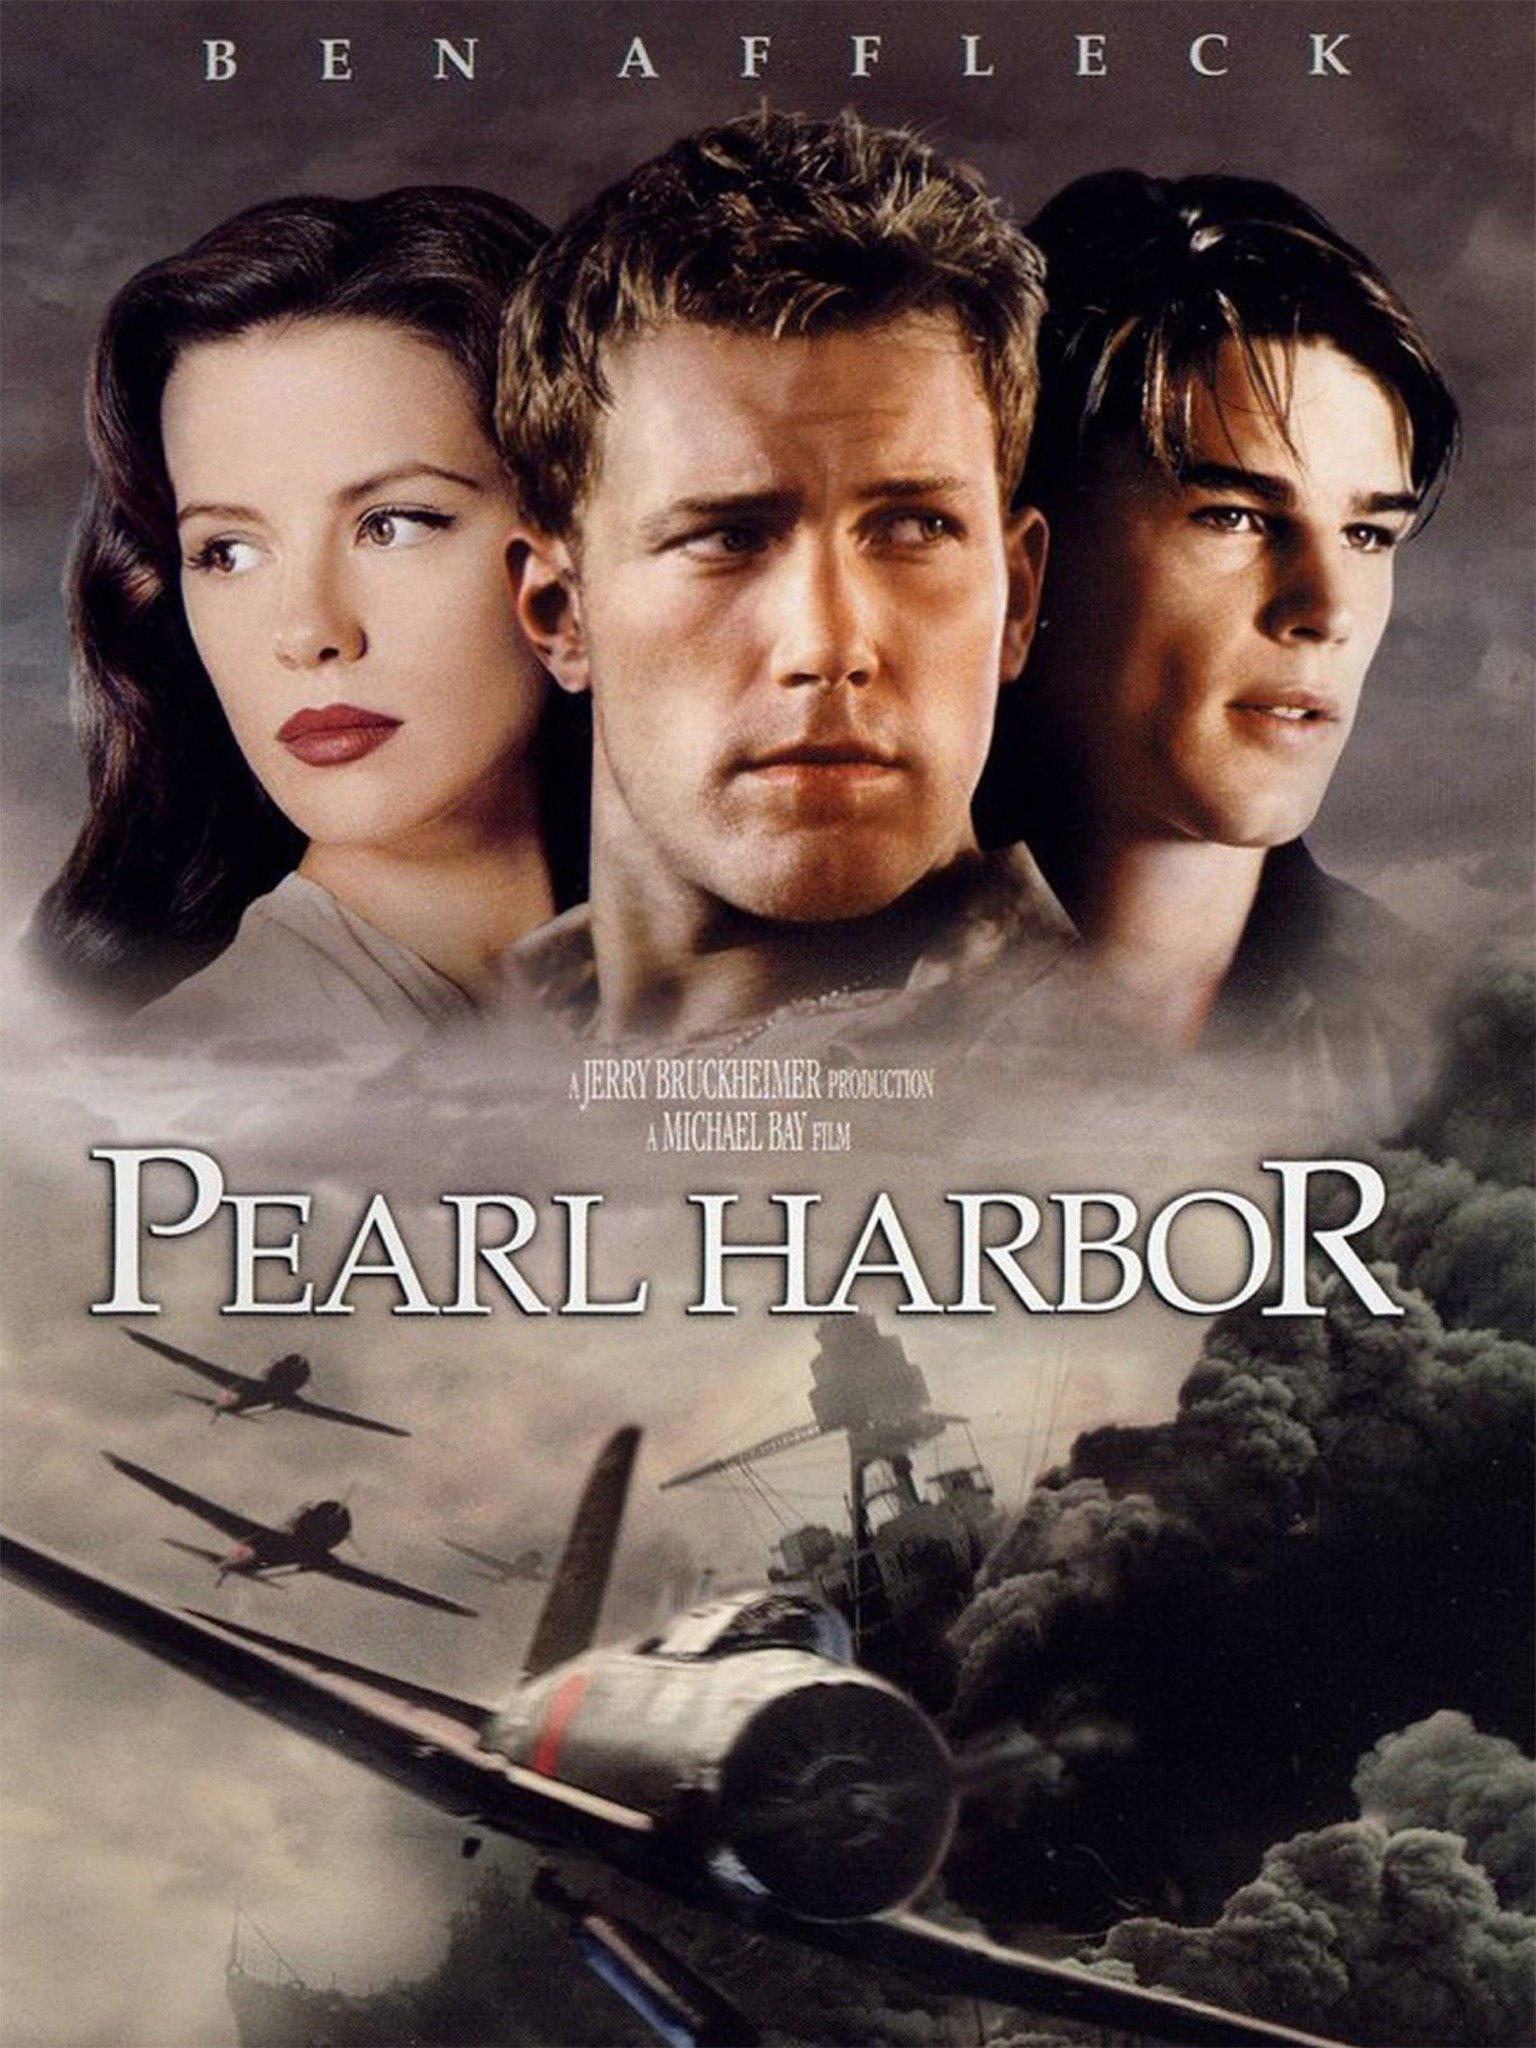 Nonton Film Air Force One : nonton, force, Pearl, Harbor, (2001), Rotten, Tomatoes